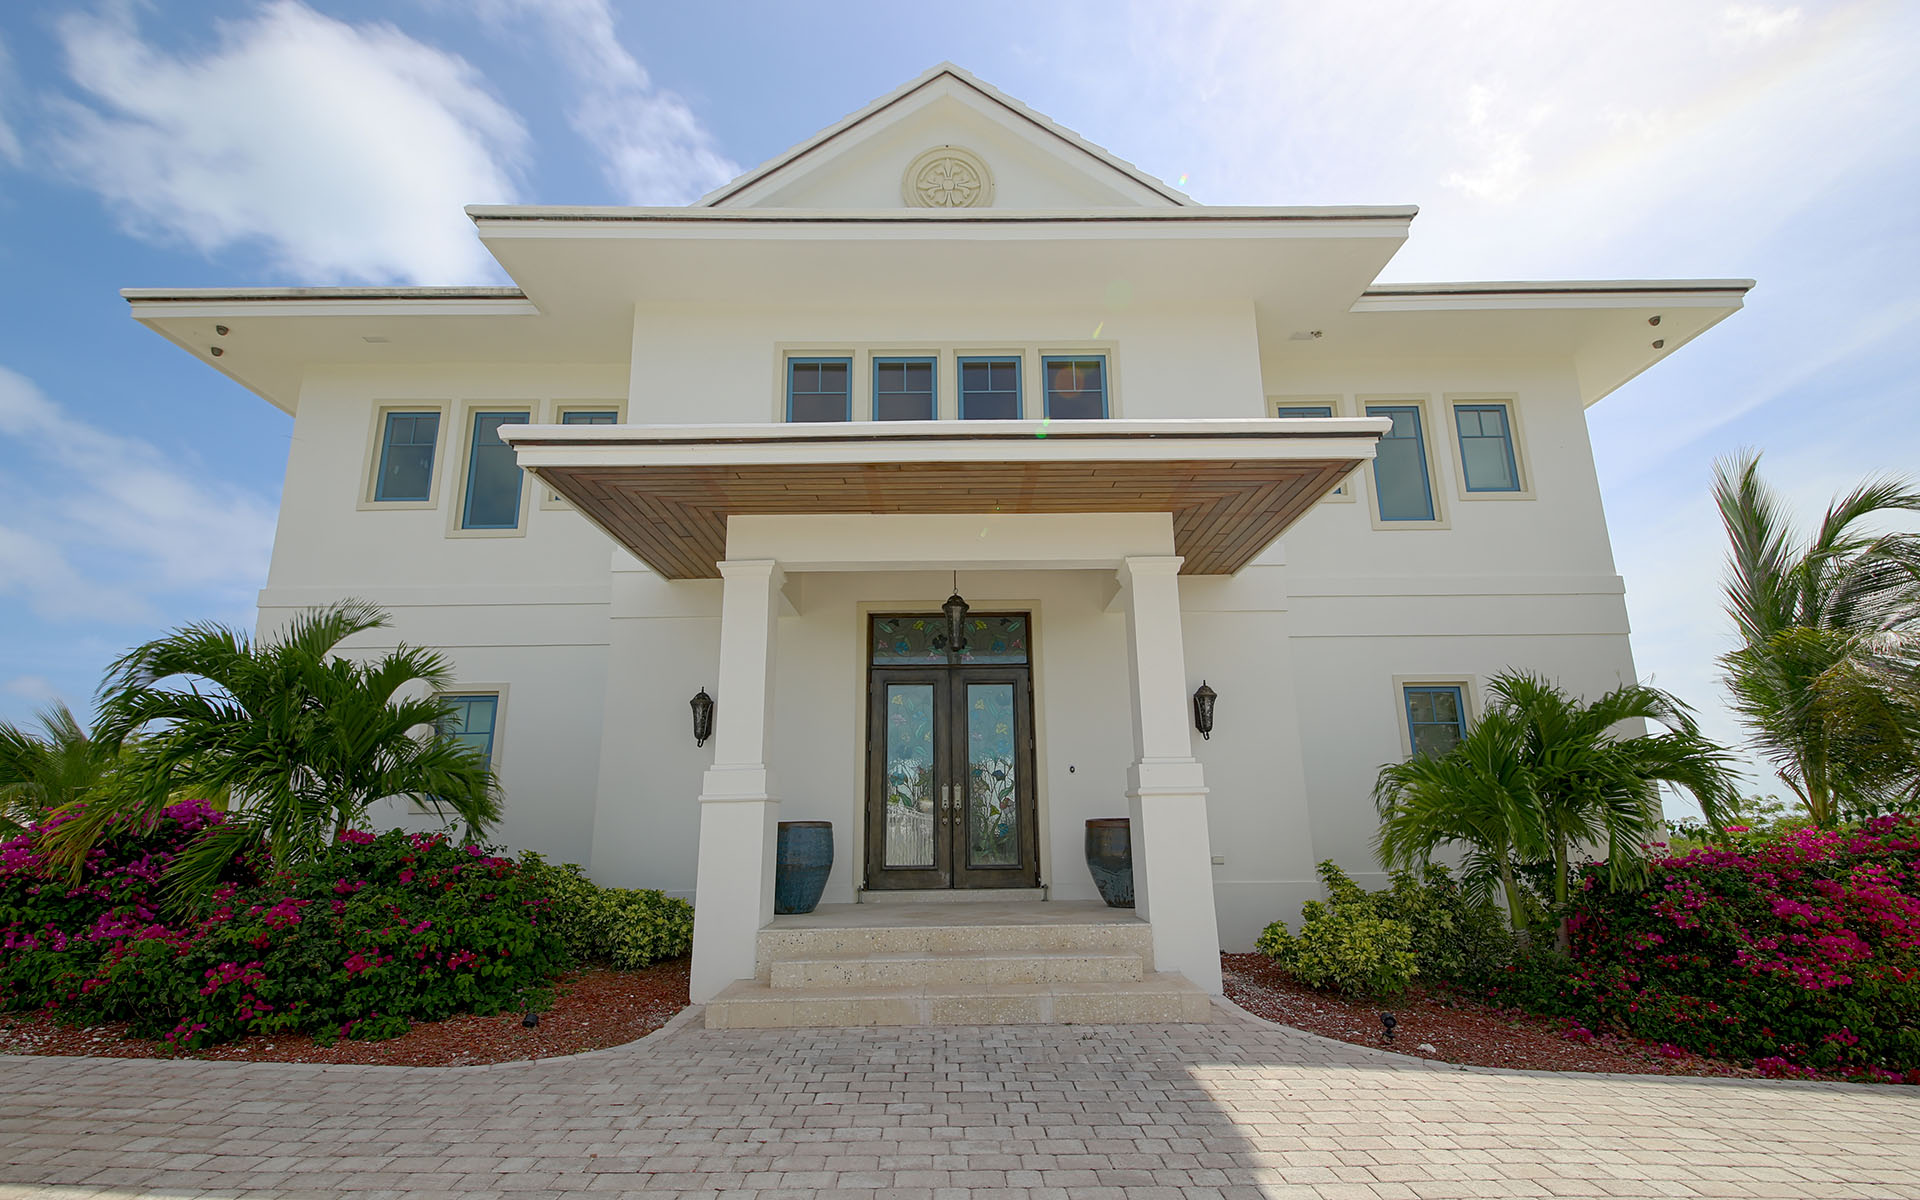 Single Family Home for Sale at White Heather - Estate Home with Expansive Ocean Views - MLS 30053 Exuma, Bahamas